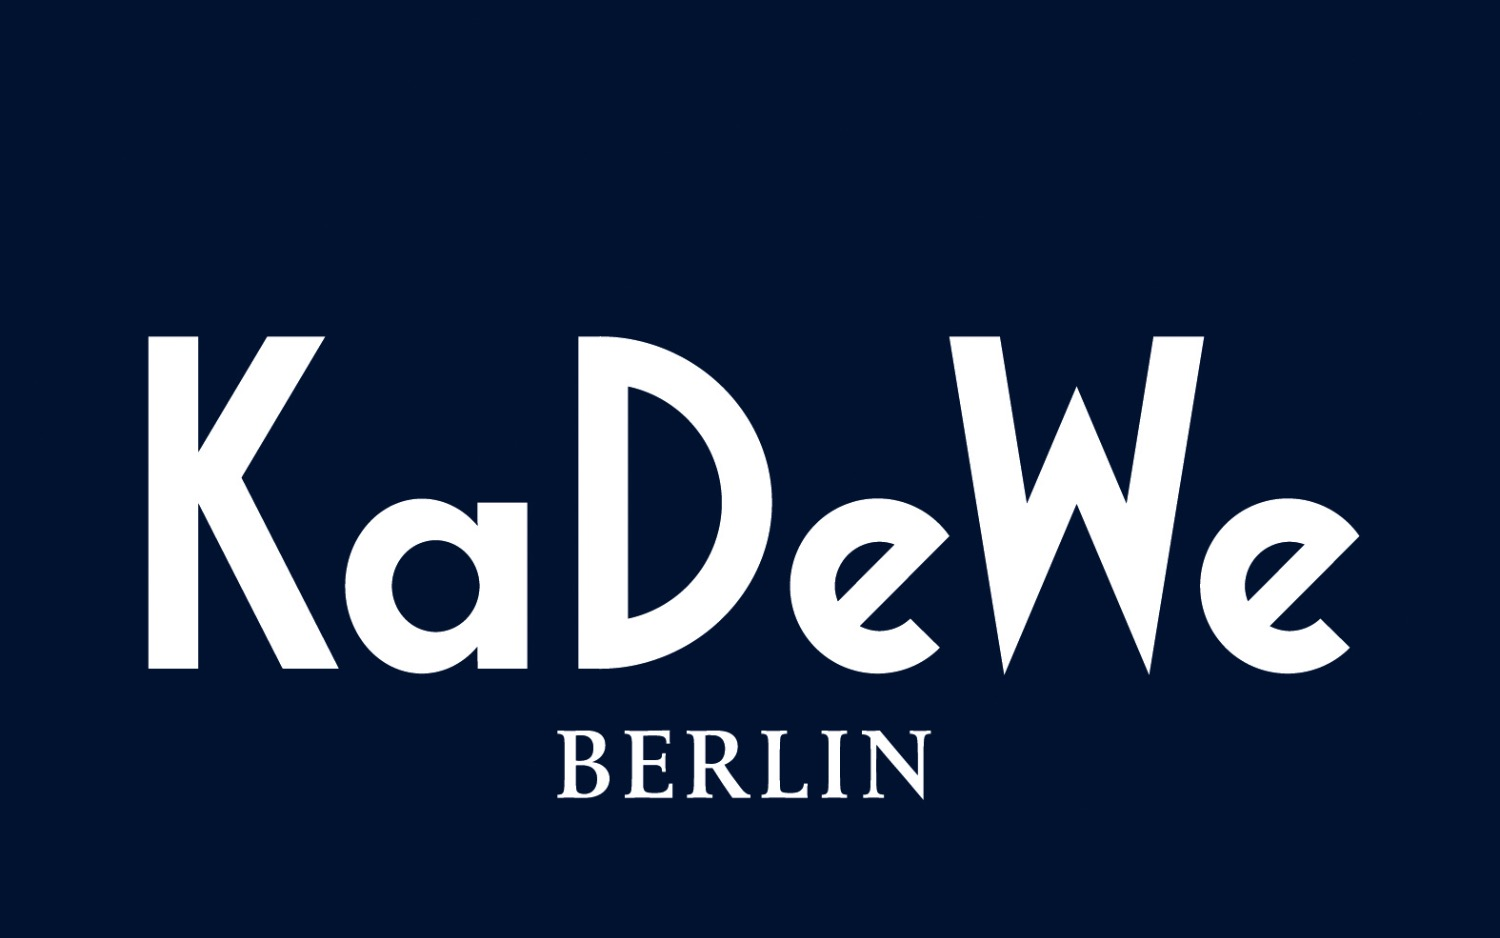 KaDeWeBerlin_4c_edited